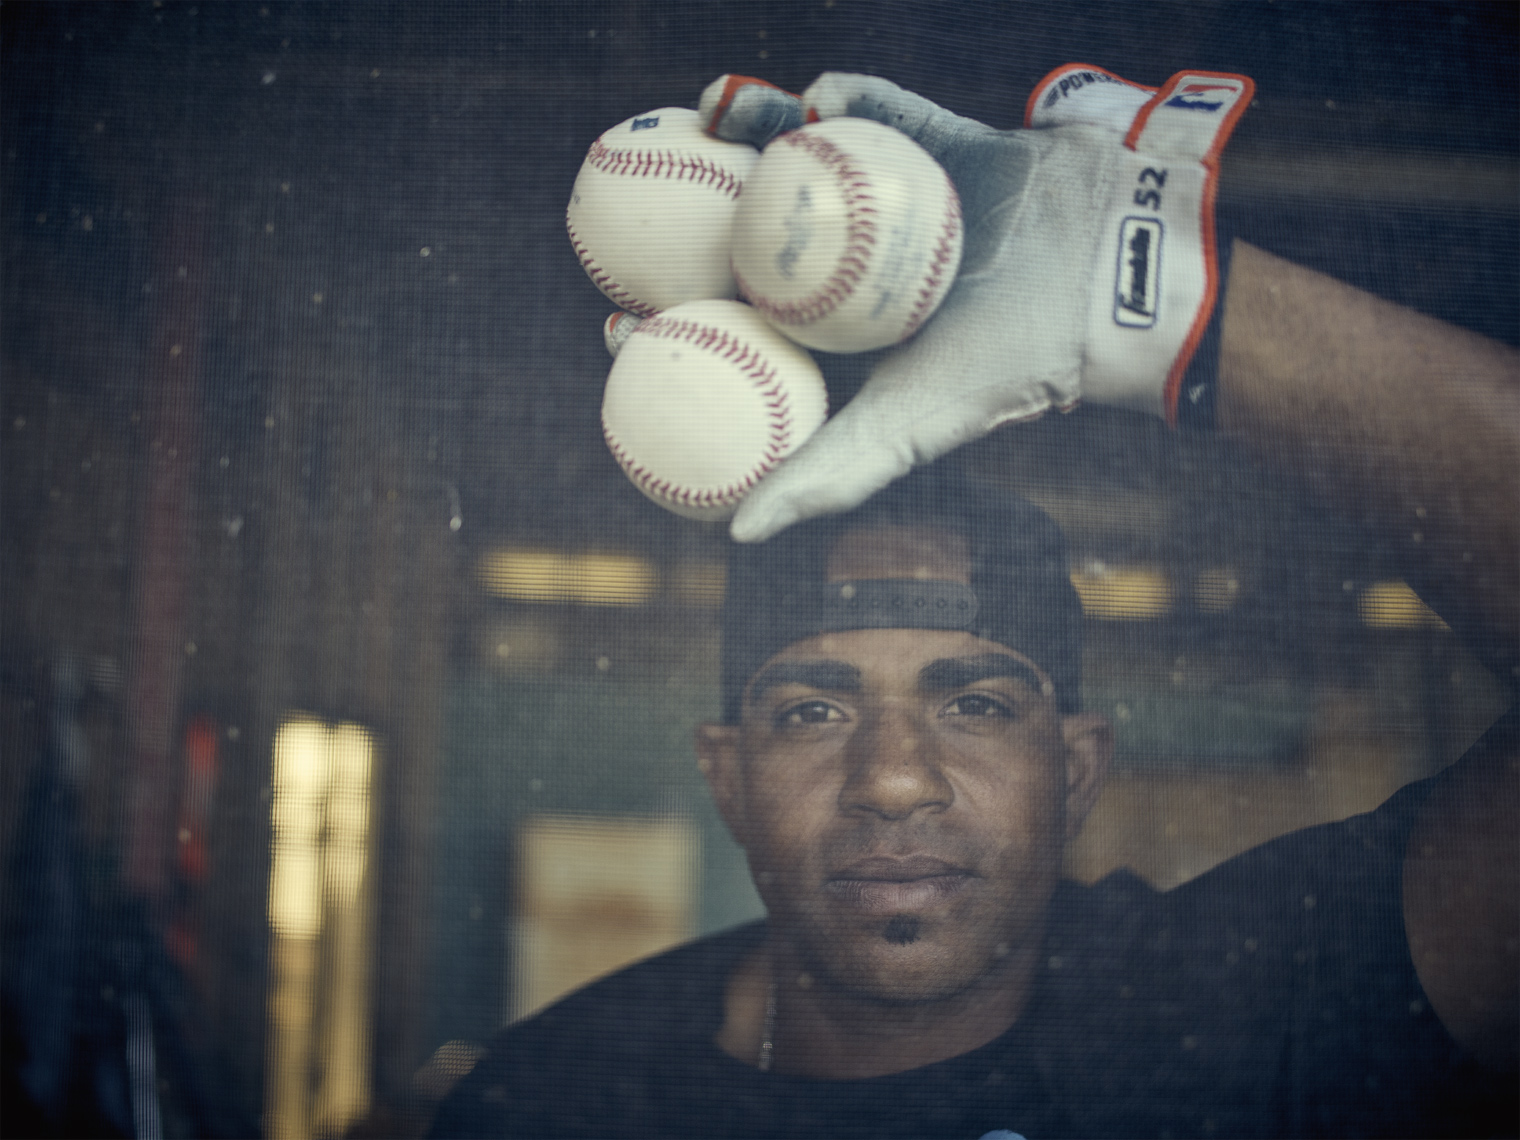 Yeonis Cespedes | New York Yankees